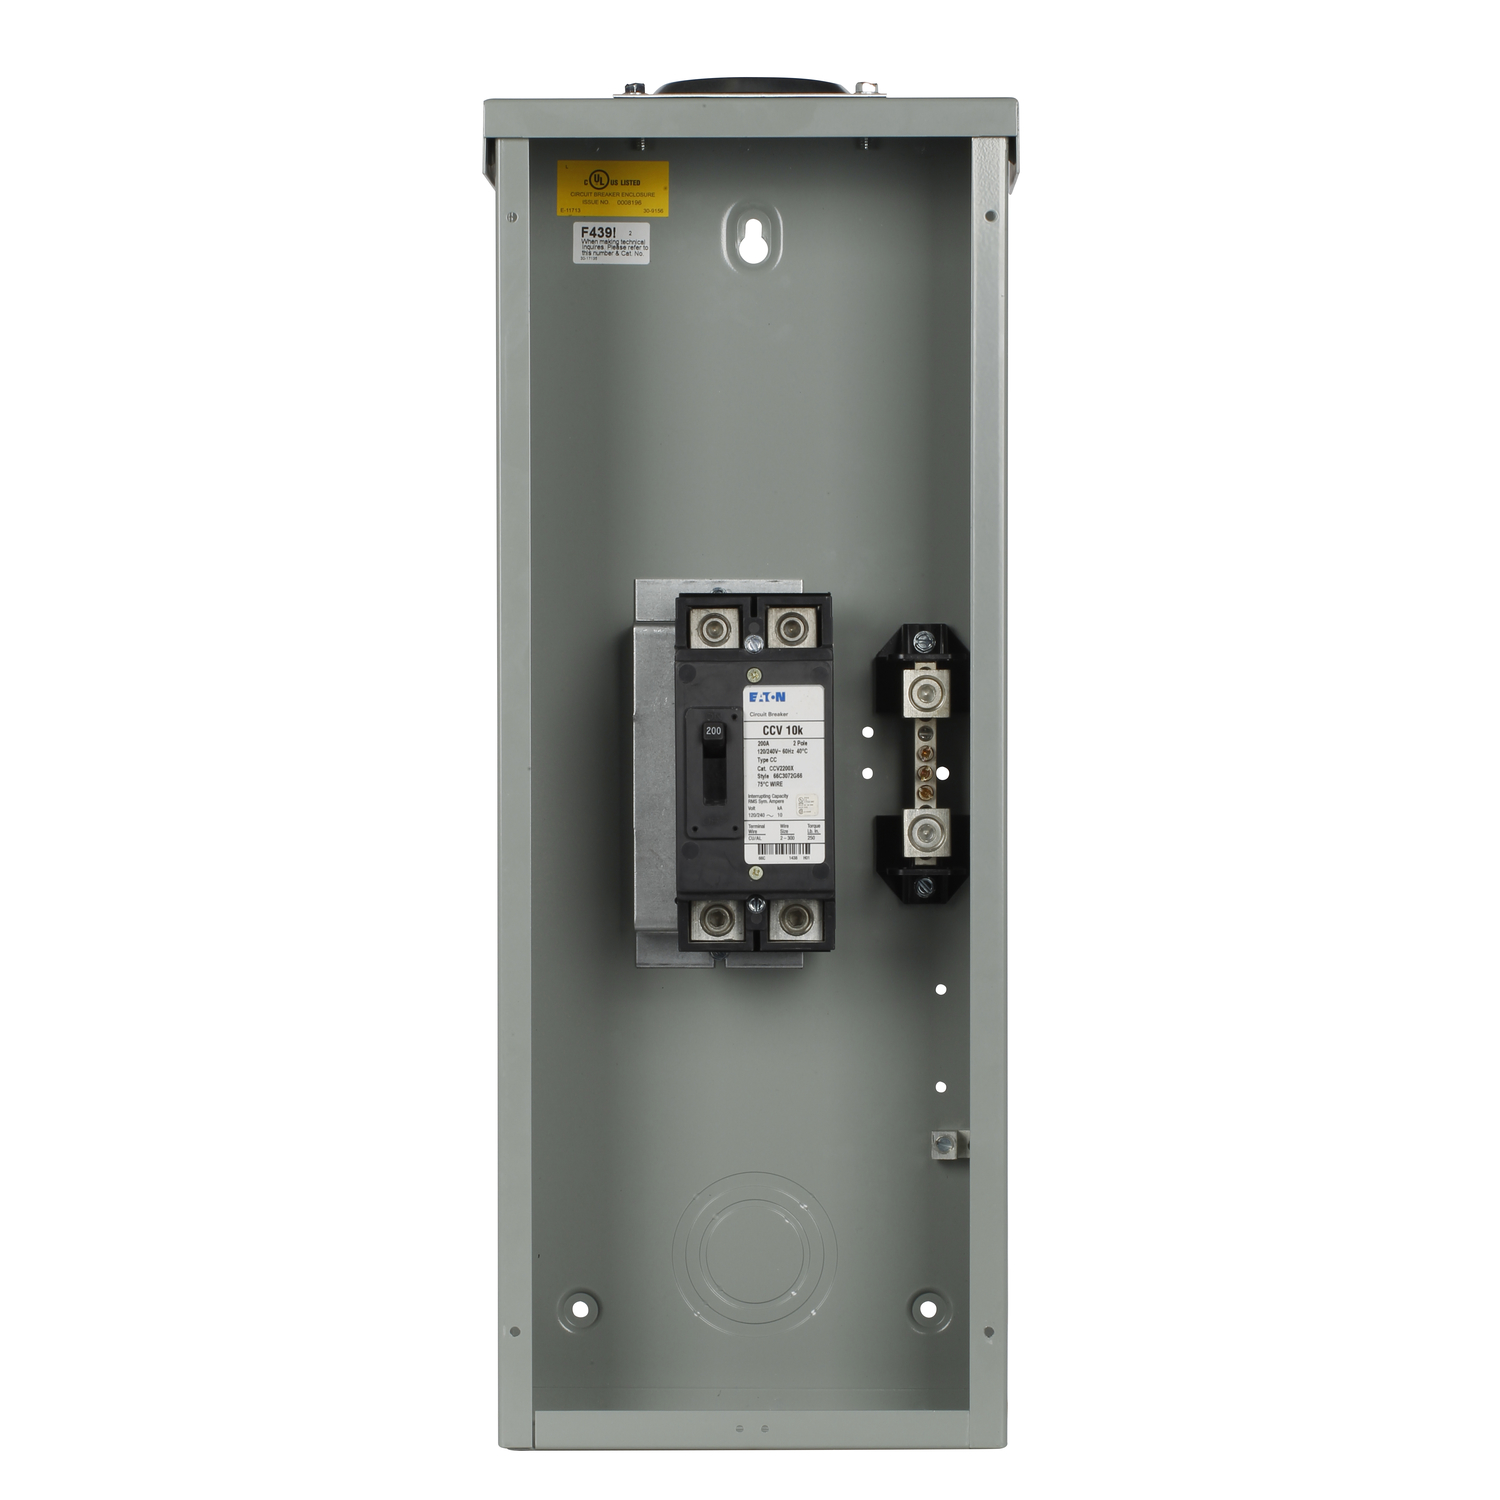 Eaton Cutler-Hammer 200 amps Plug In 2-Pole Mobile Home Breaker ...